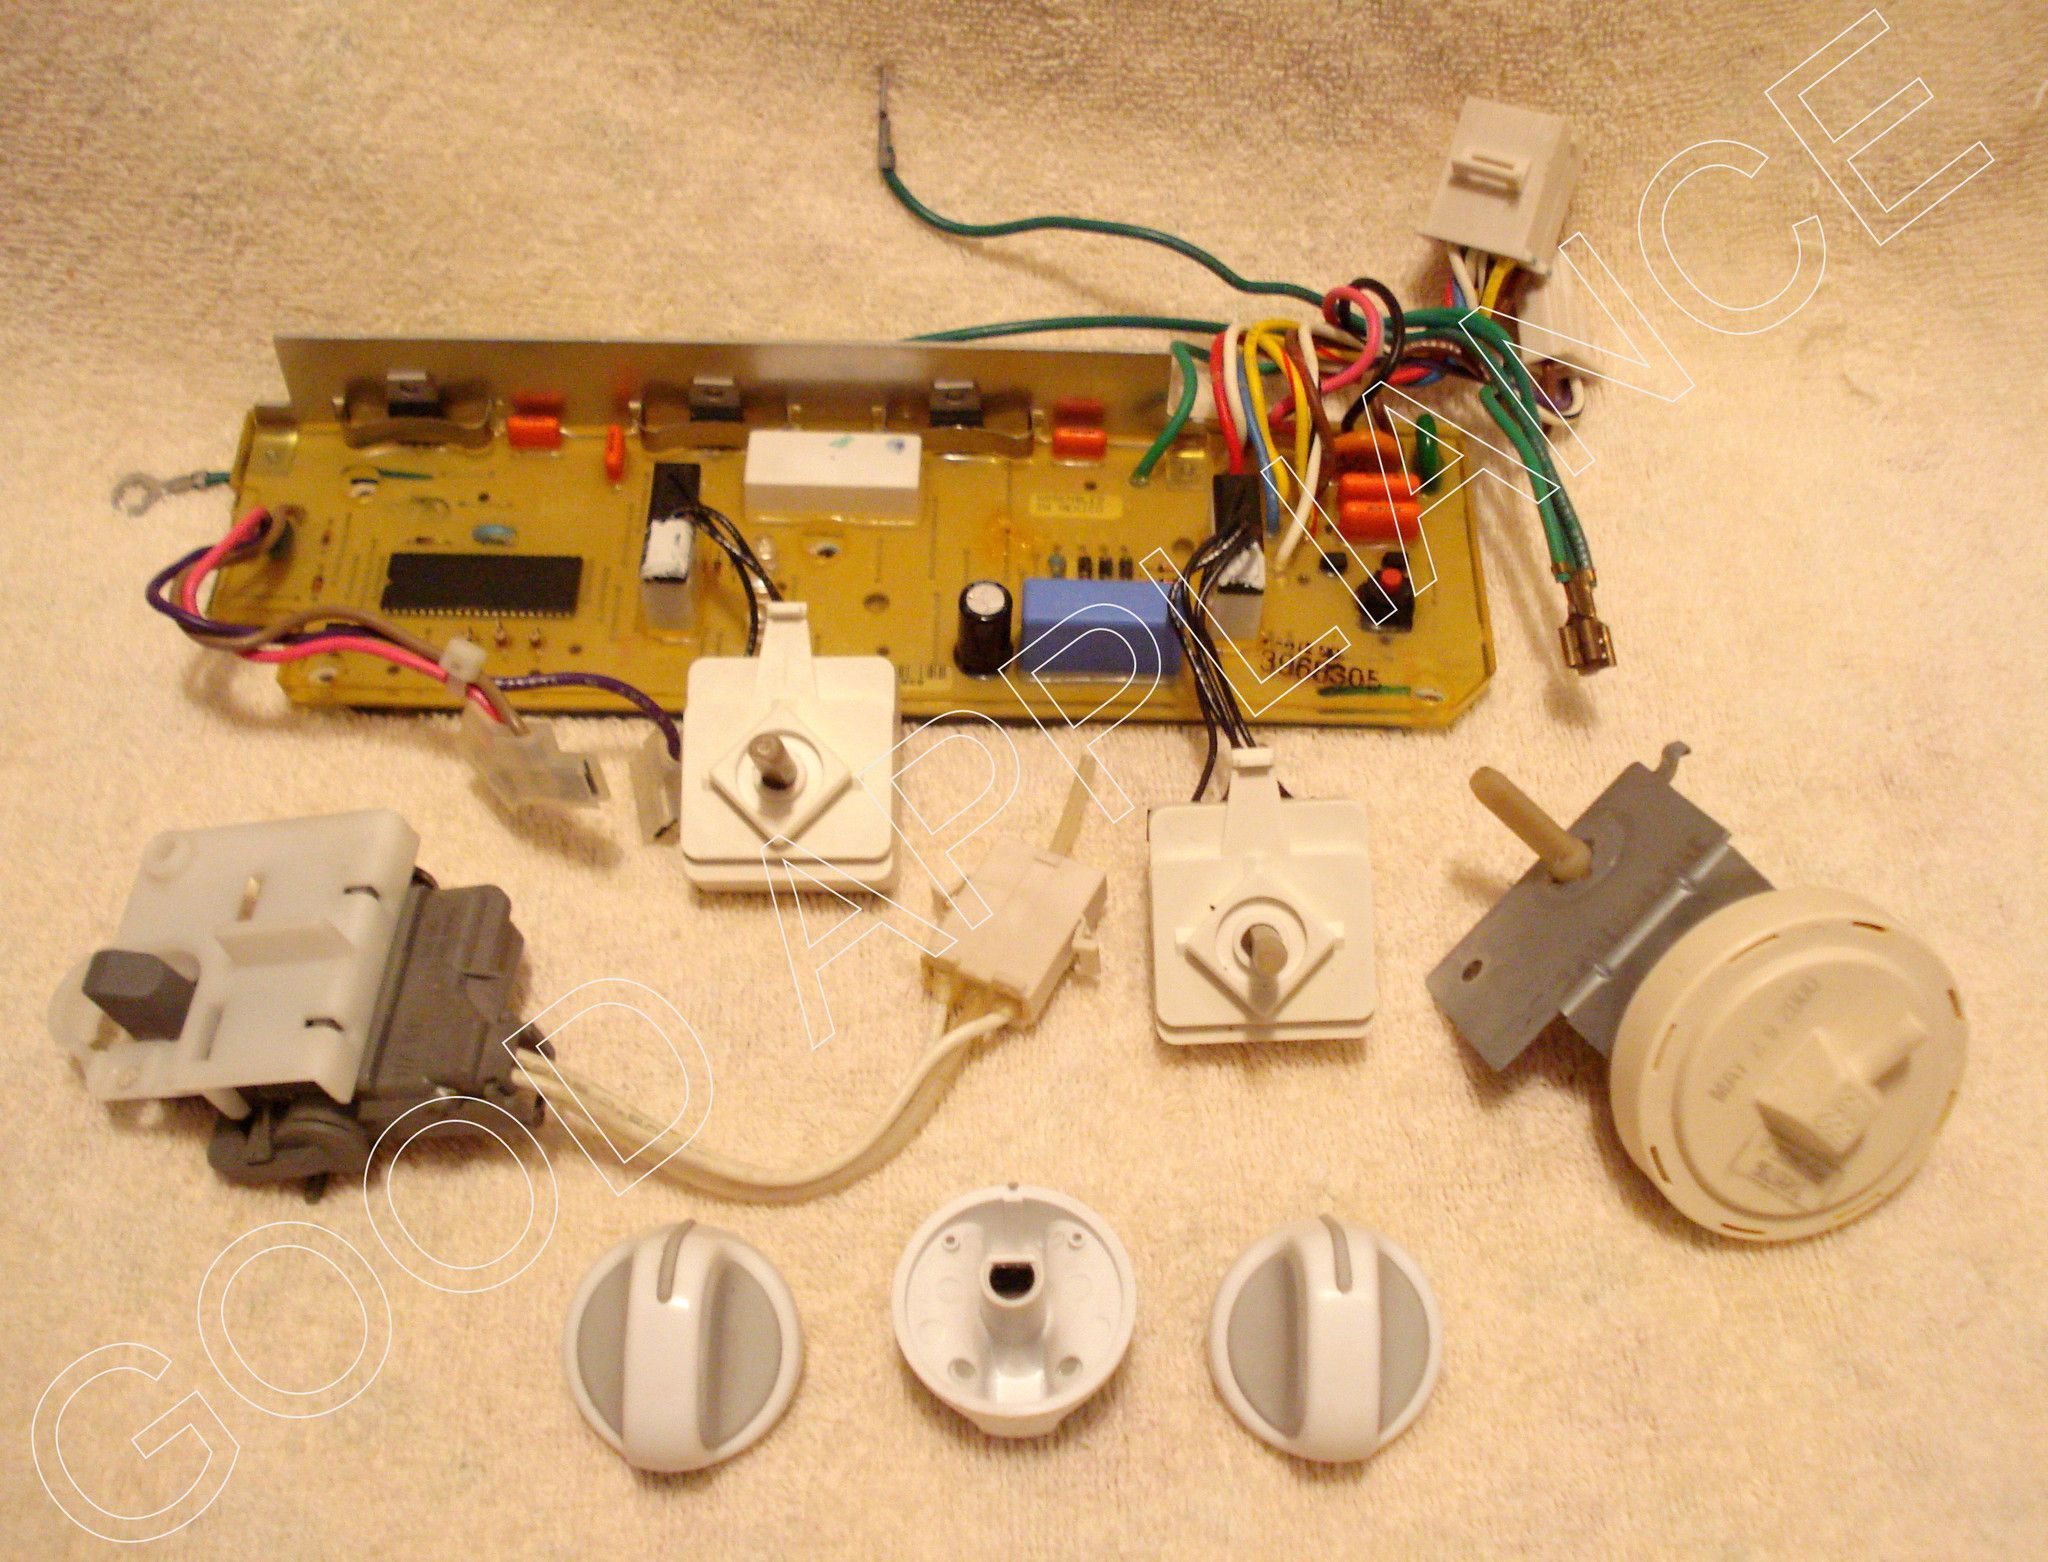 kenmore whirlpool washer electronic control board switch and knob set appliance machines